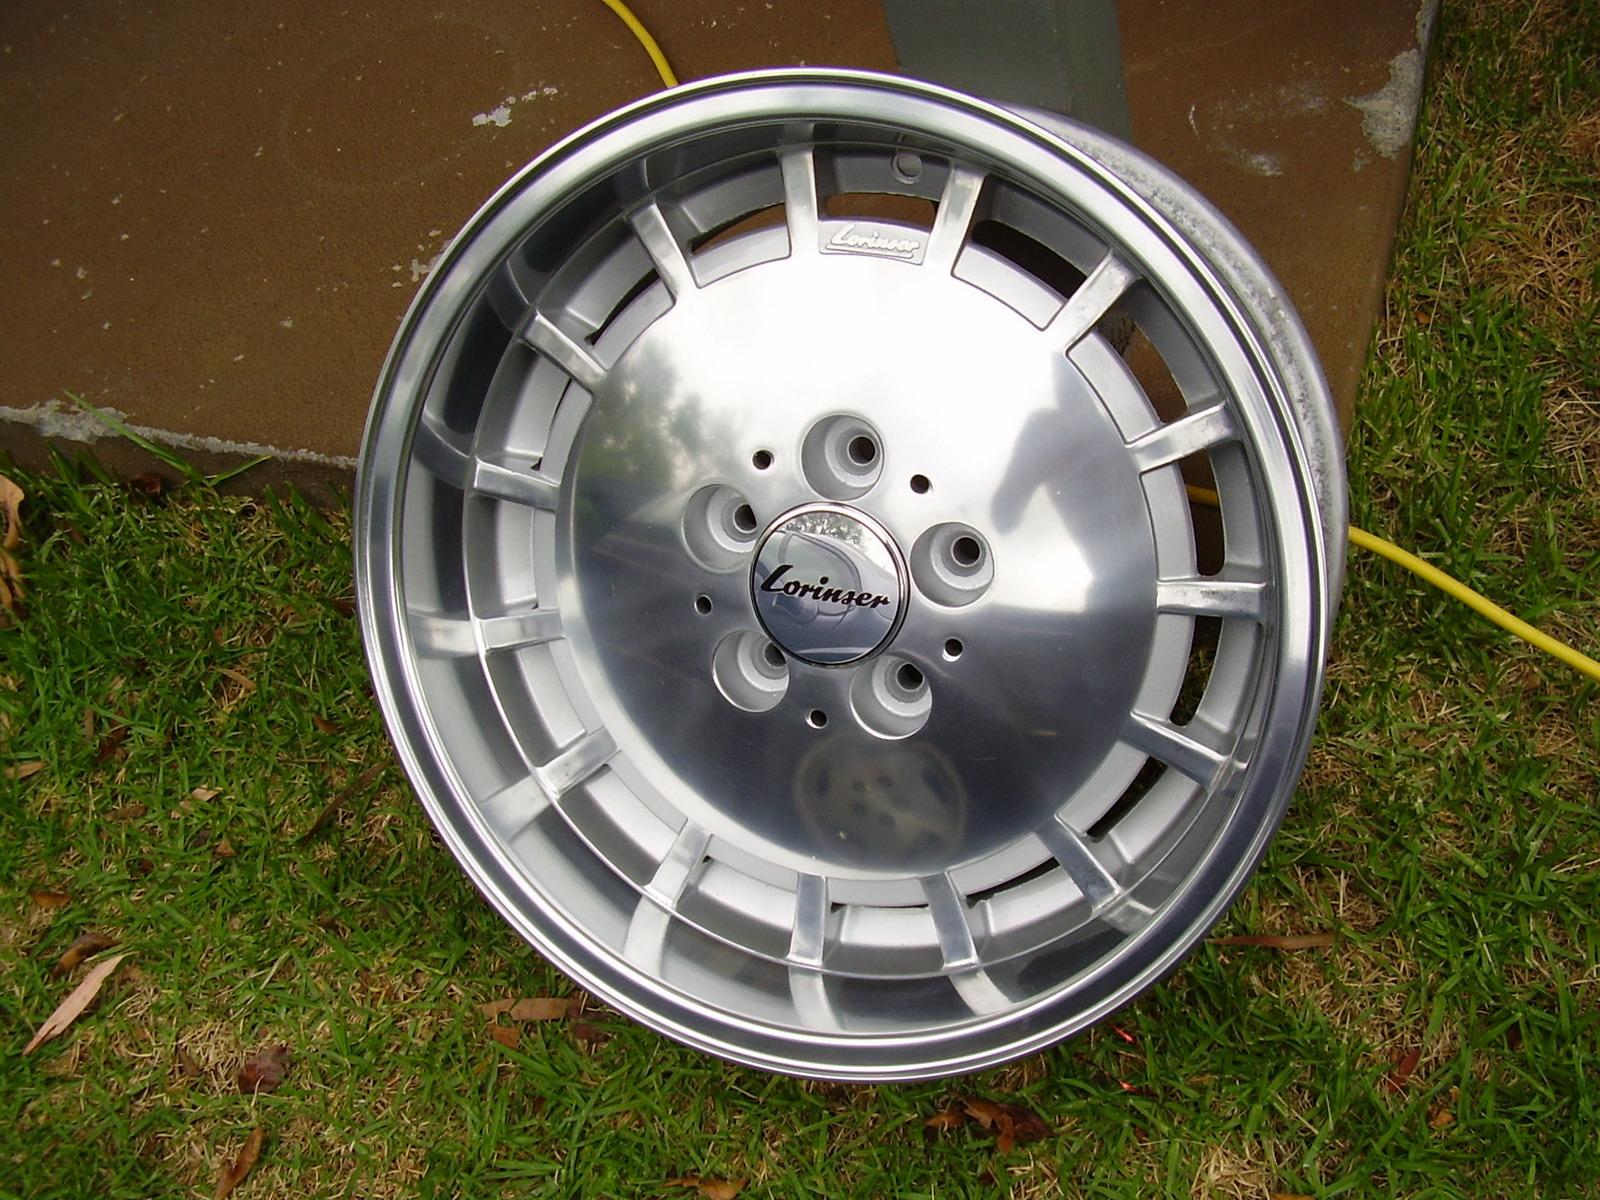 Discount Tire Direct >> What model are these Lorinser rims? - Mercedes-Benz Forum